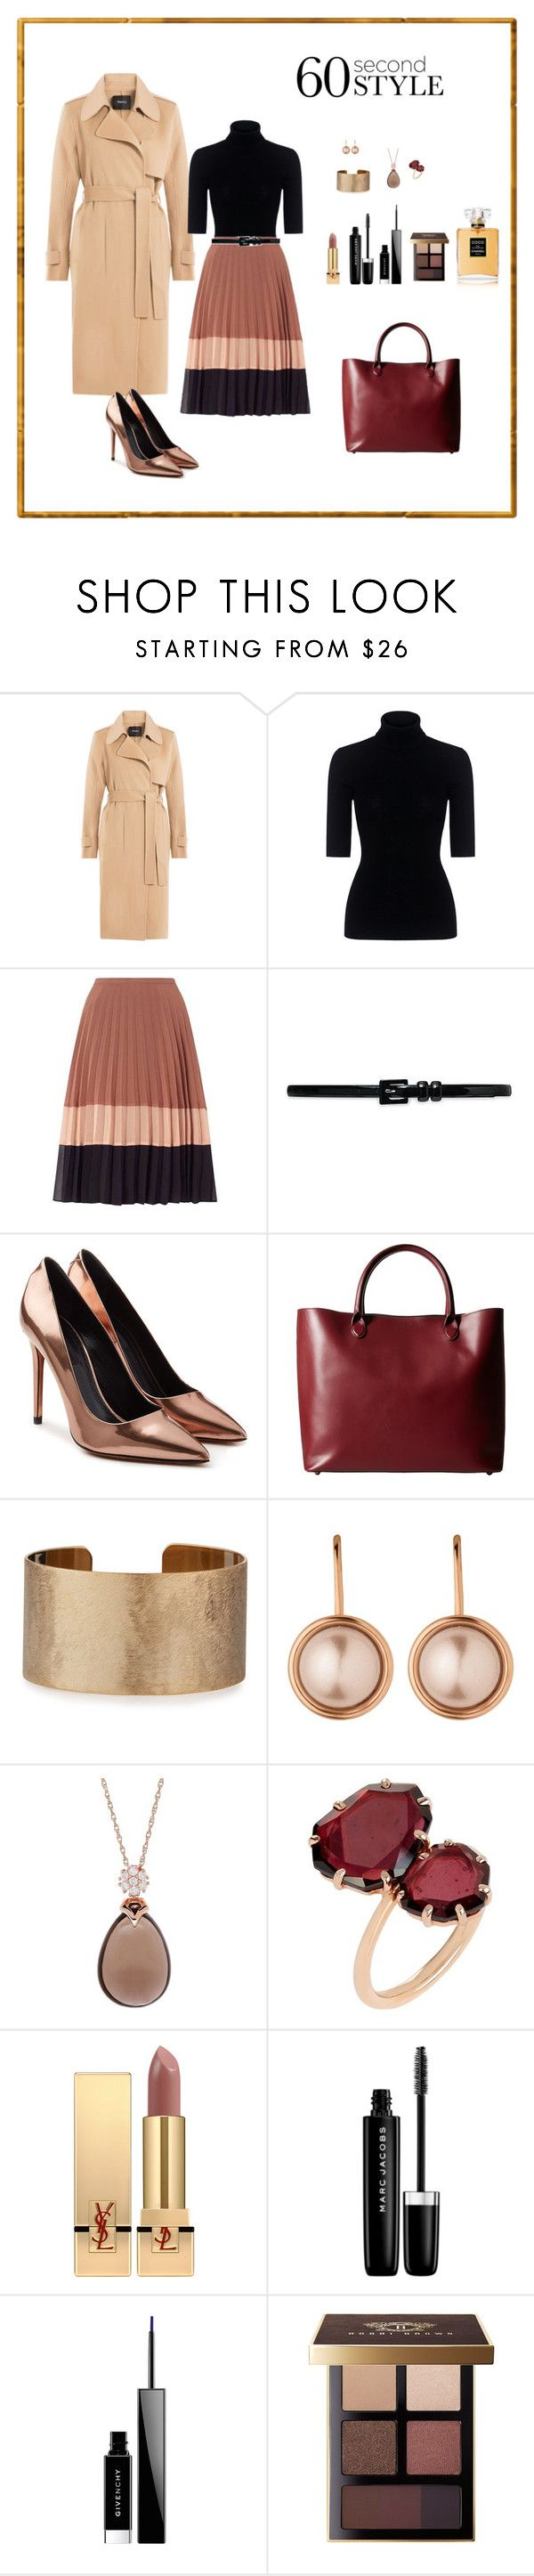 """Untitled #231"" by rachettal ❤ liked on Polyvore featuring Theory, Marissa Webb, Miss Selfridge, Ralph Lauren, Alexander Wang, Meli Melo, Panacea, Dyrberg/Kern, Lord & Taylor and Annoushka"